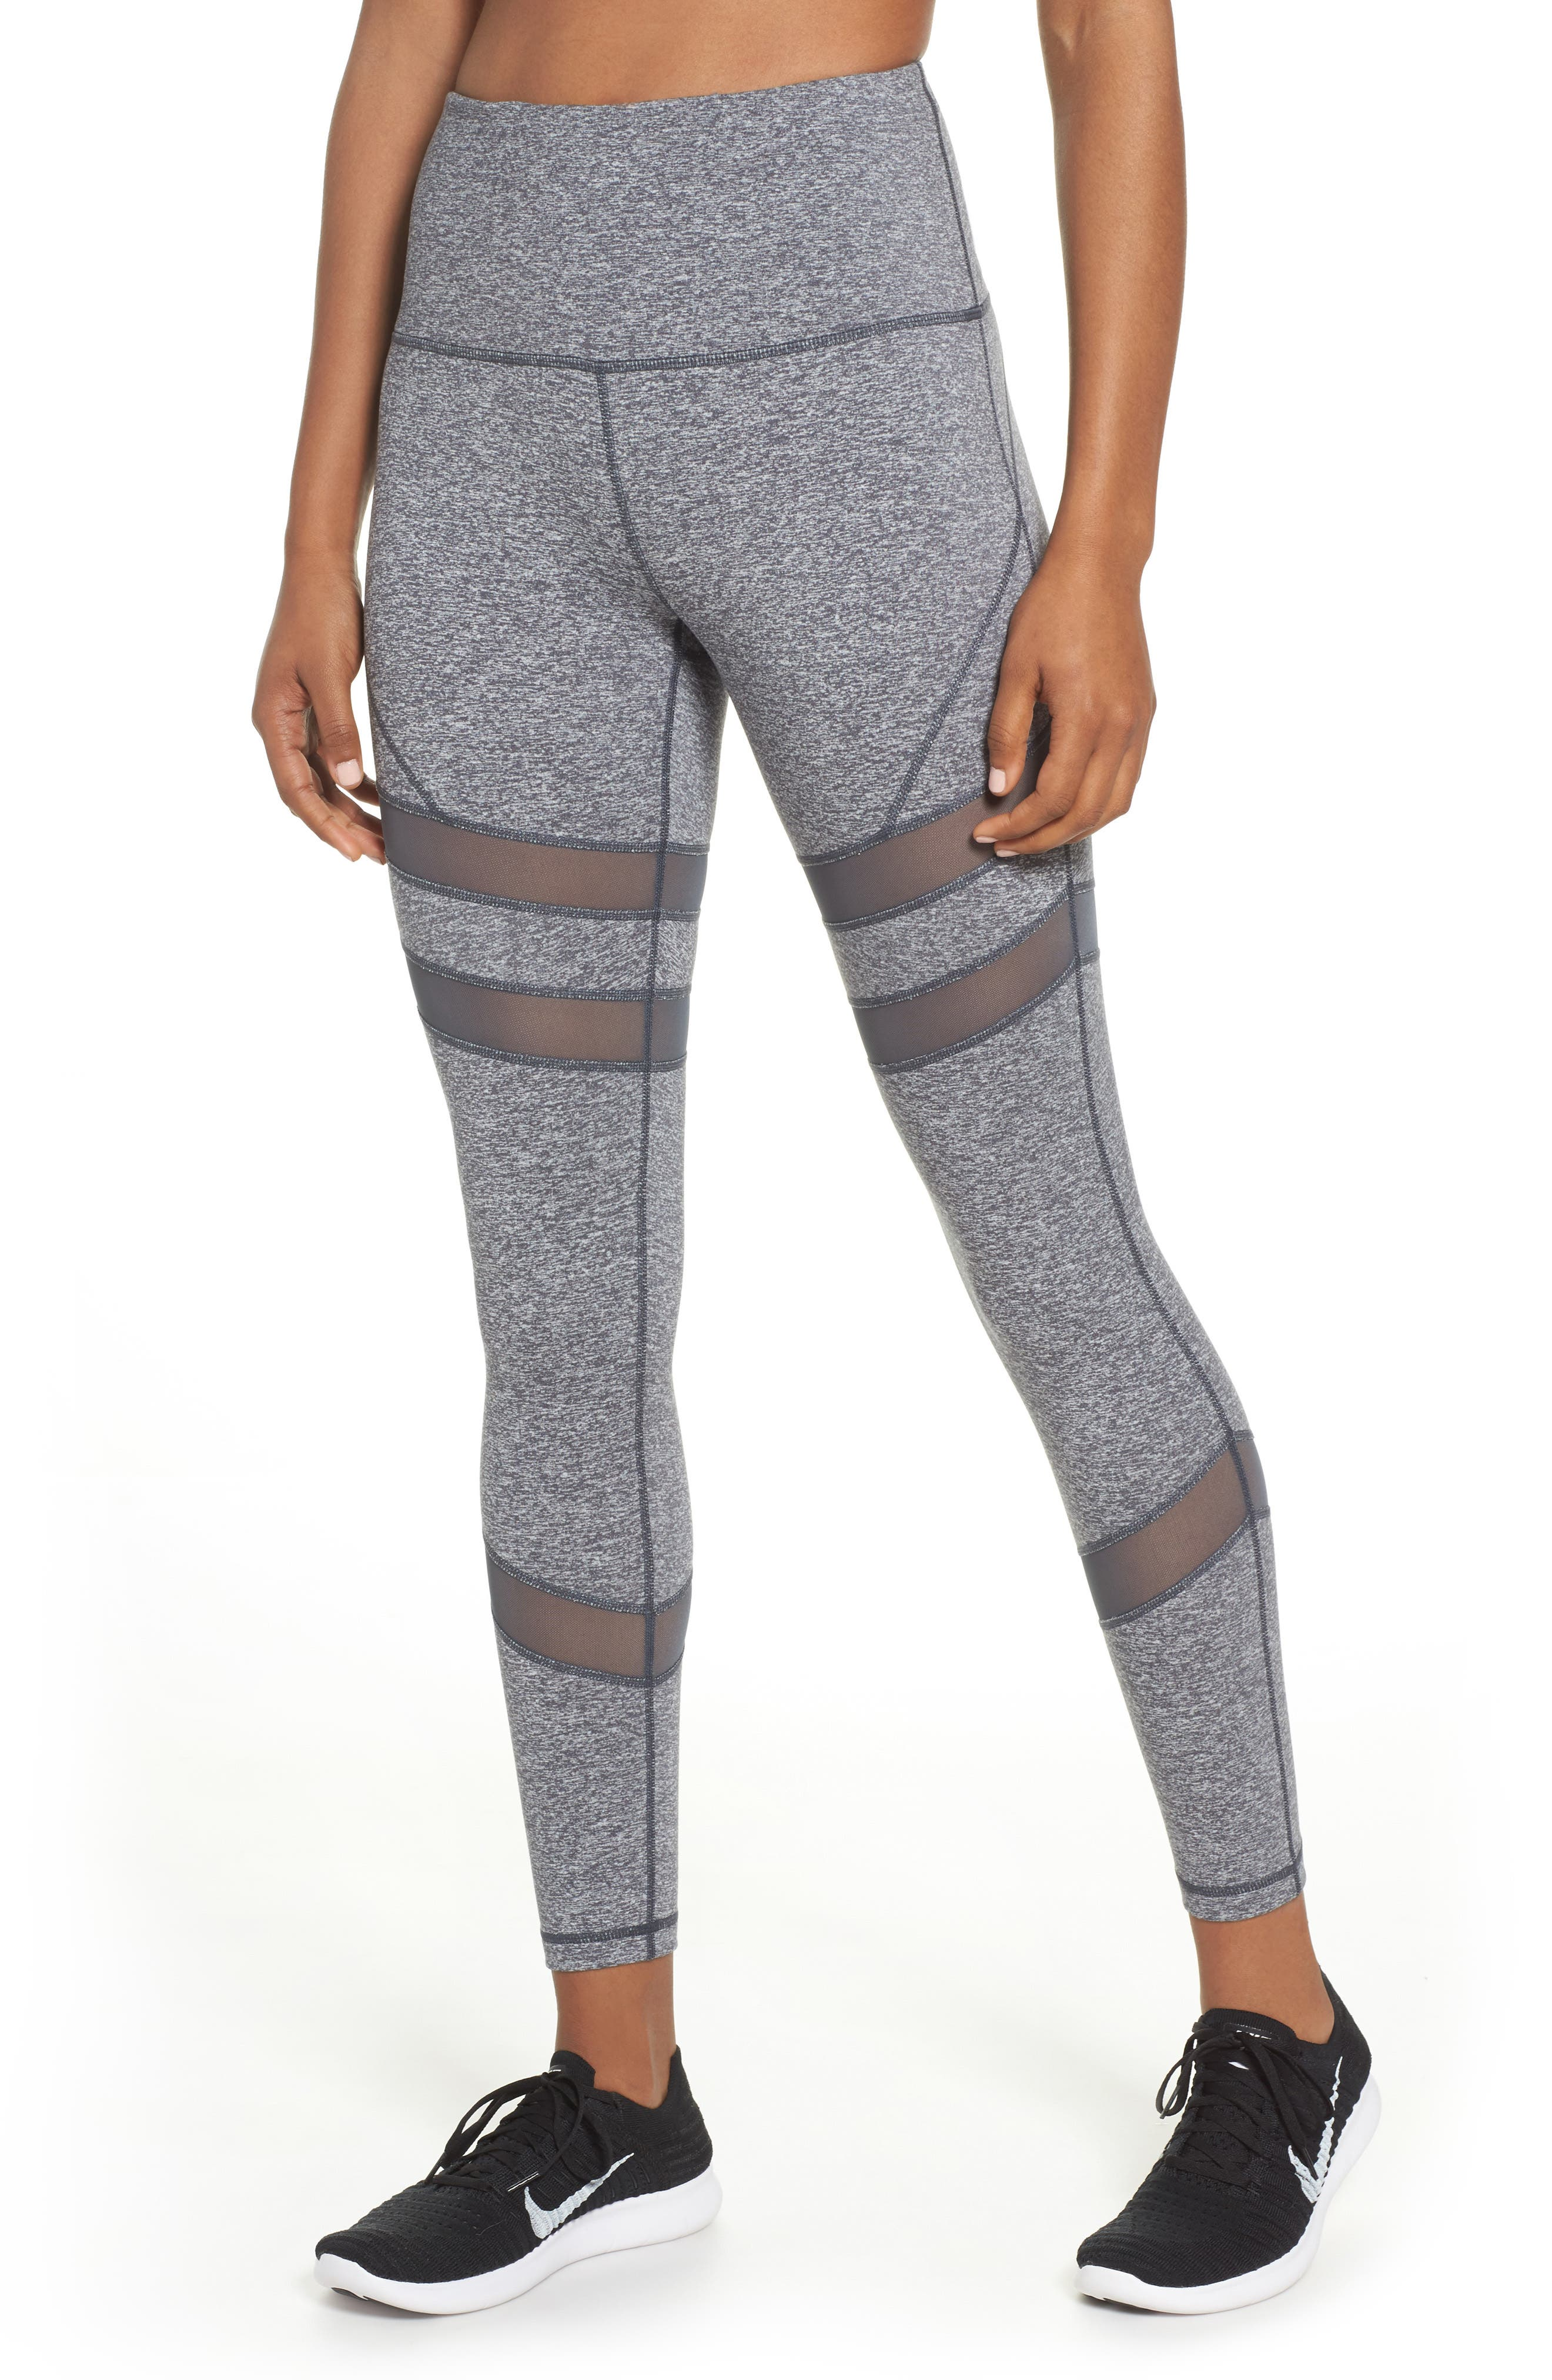 Main Image - Zella Good Sport High Waist Midi Leggings